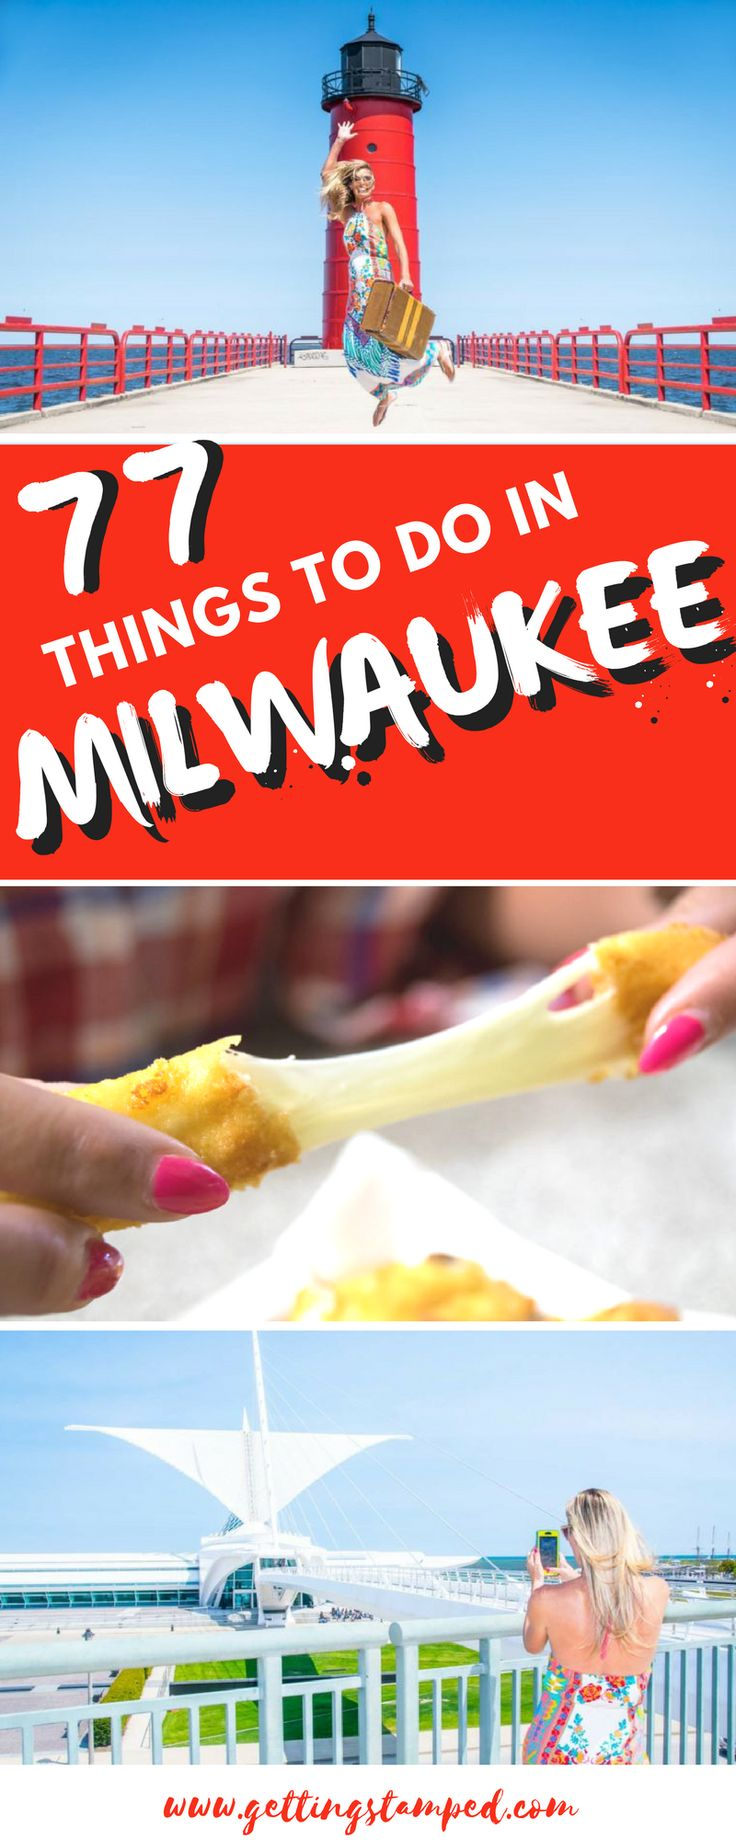 #Milwaukee offers each visitor a unique opportunity to jump into a thriving, busy, contemporary city. If you're looking for things to do in Milwaukee, this list is a great place to start, but at 77 attractions and oddities, it's only the smallest sliver of what's available on any given day in Milwaukee || Getting Stamped - Couple #Travel & #Photography #Blog